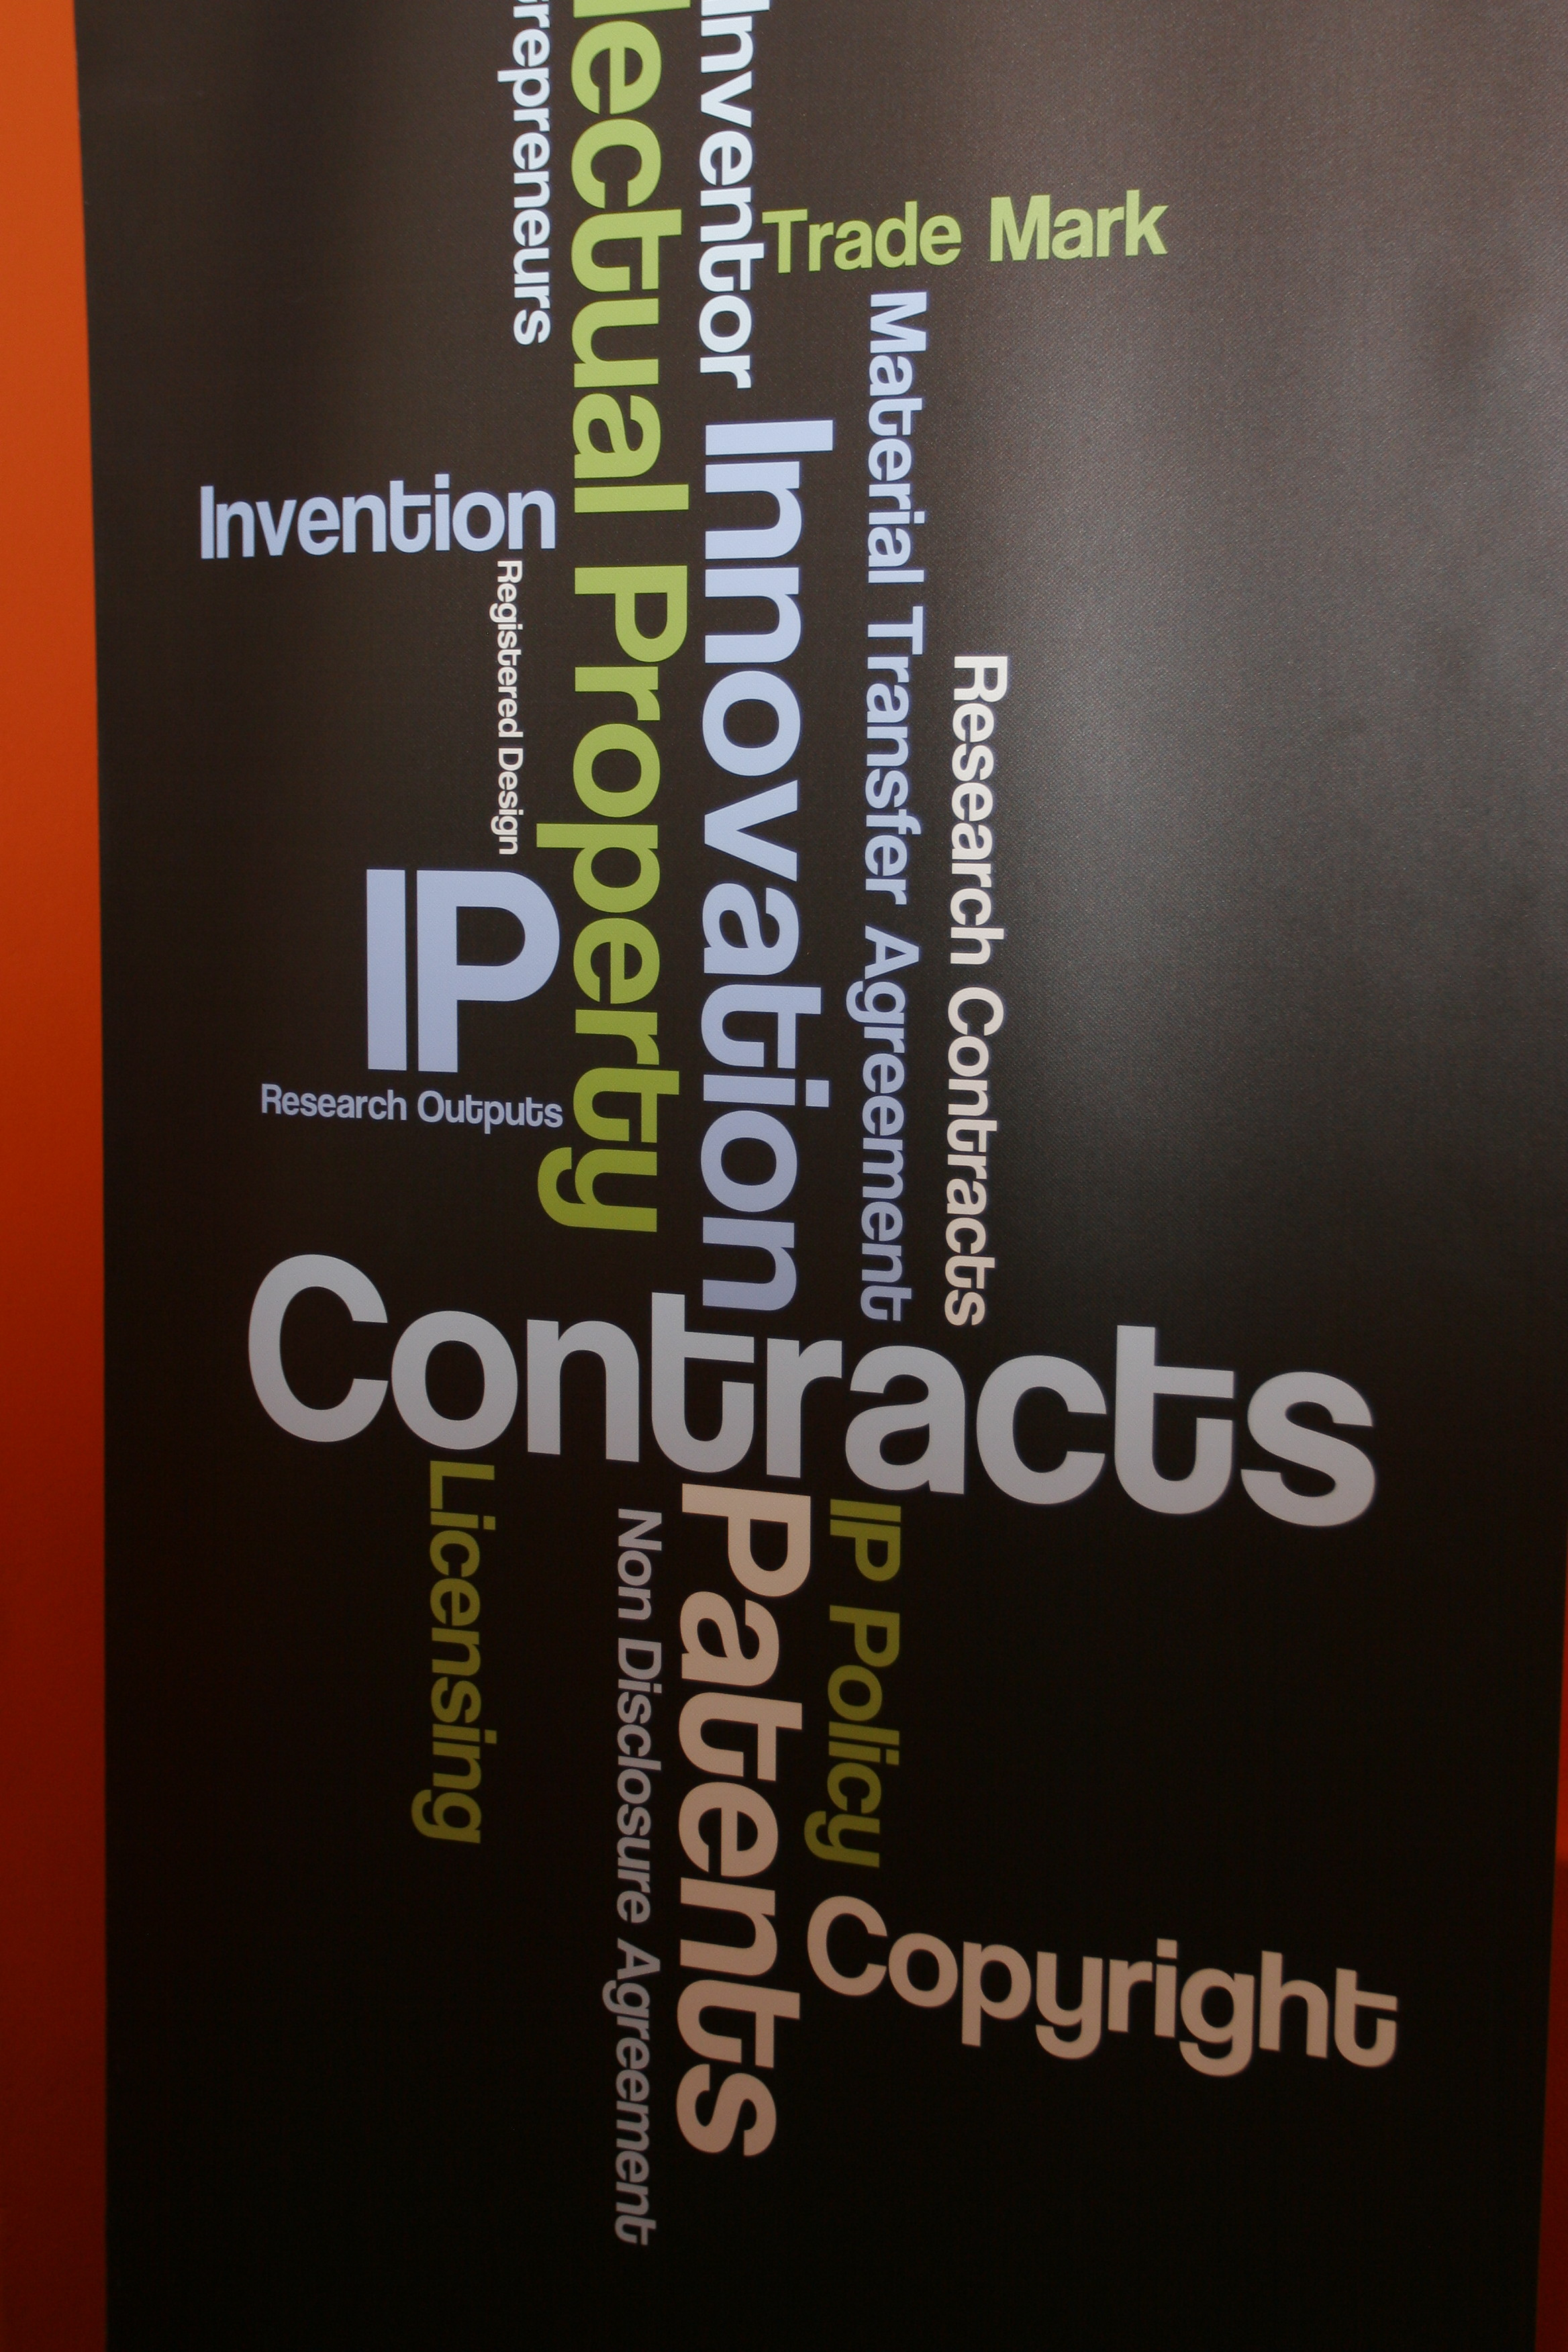 Research contracts and IP Services banner